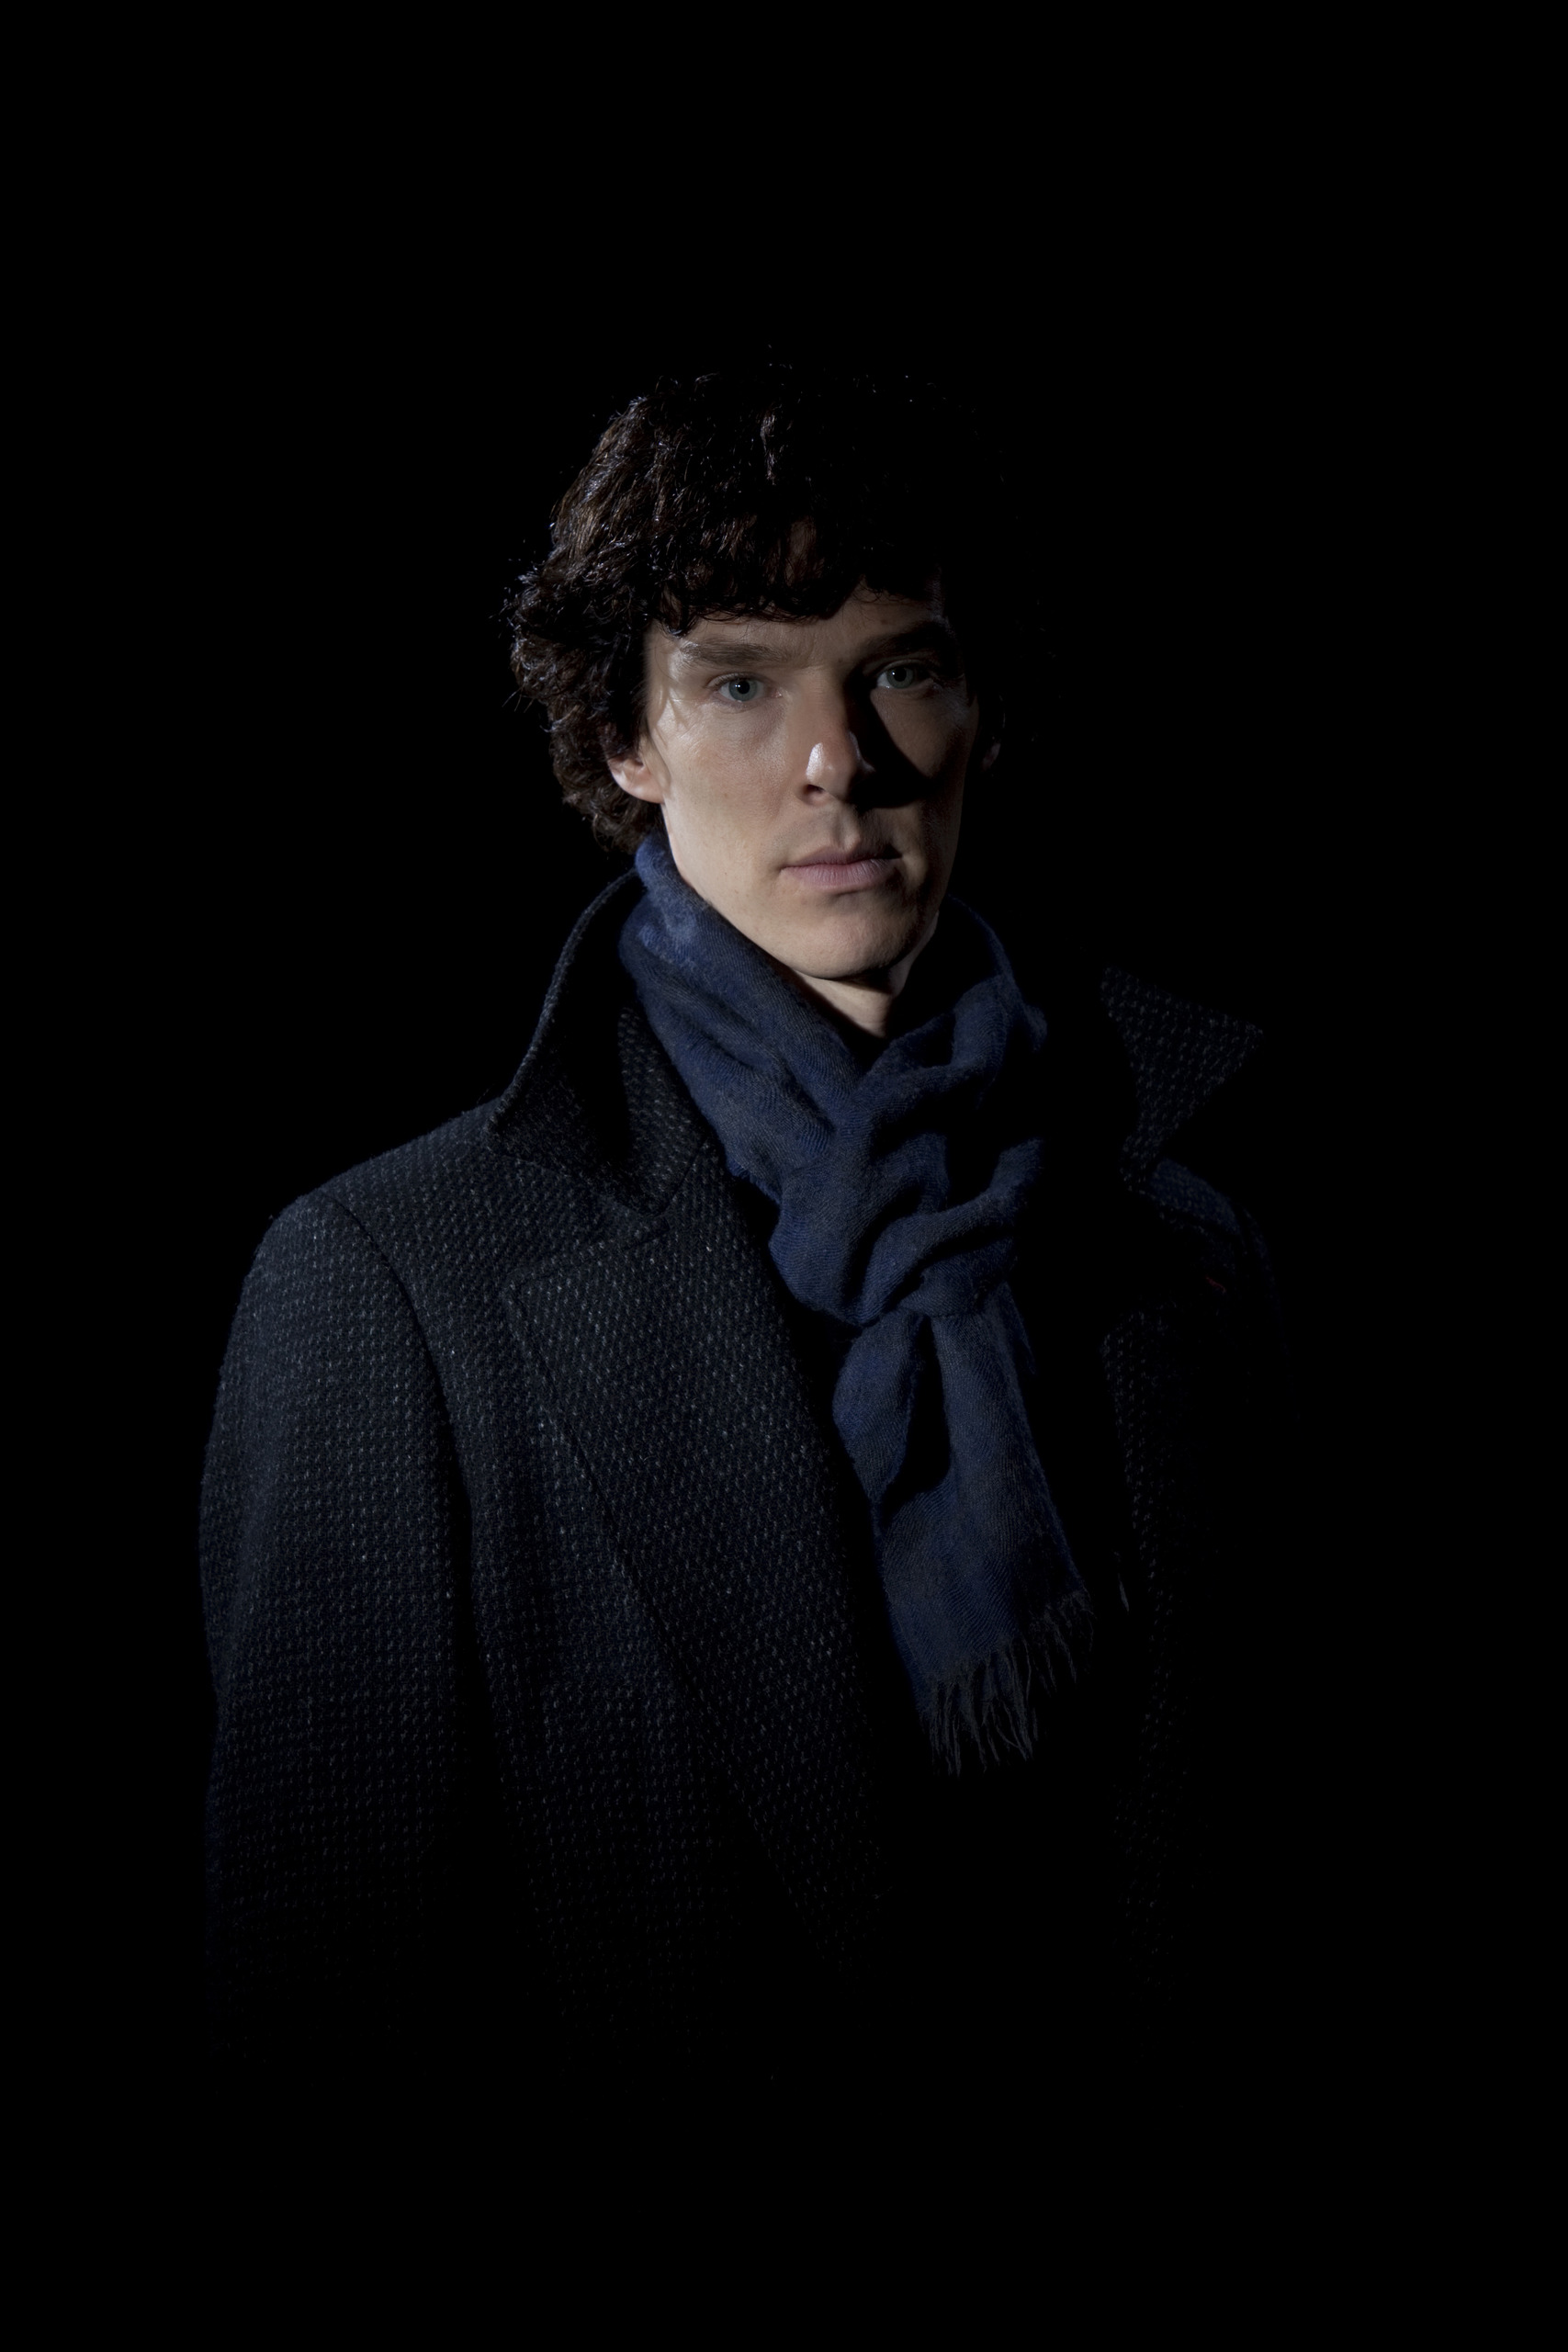 Sherlock hd download